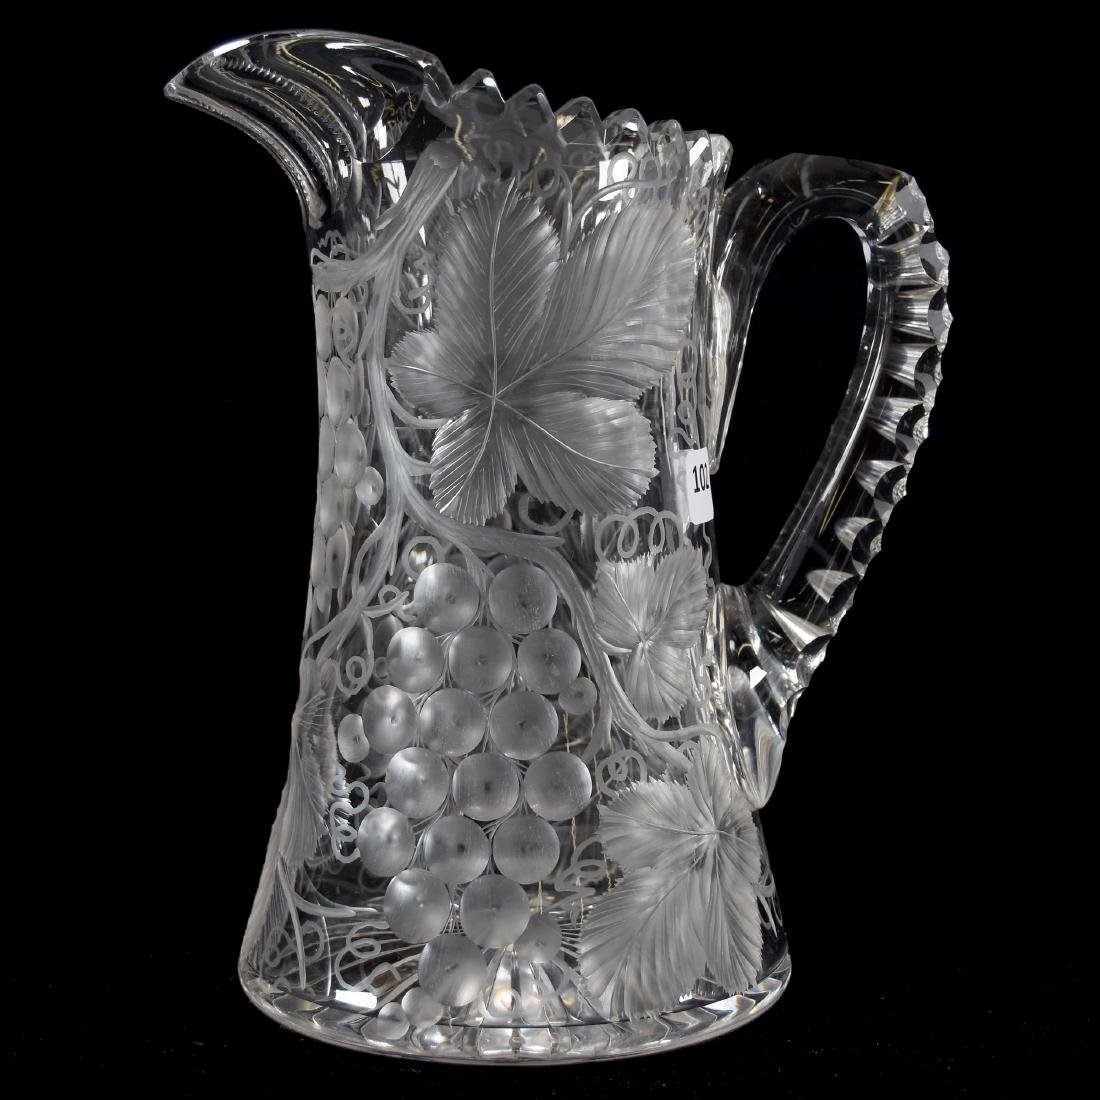 Pitcher. Engraved Vintage Motif